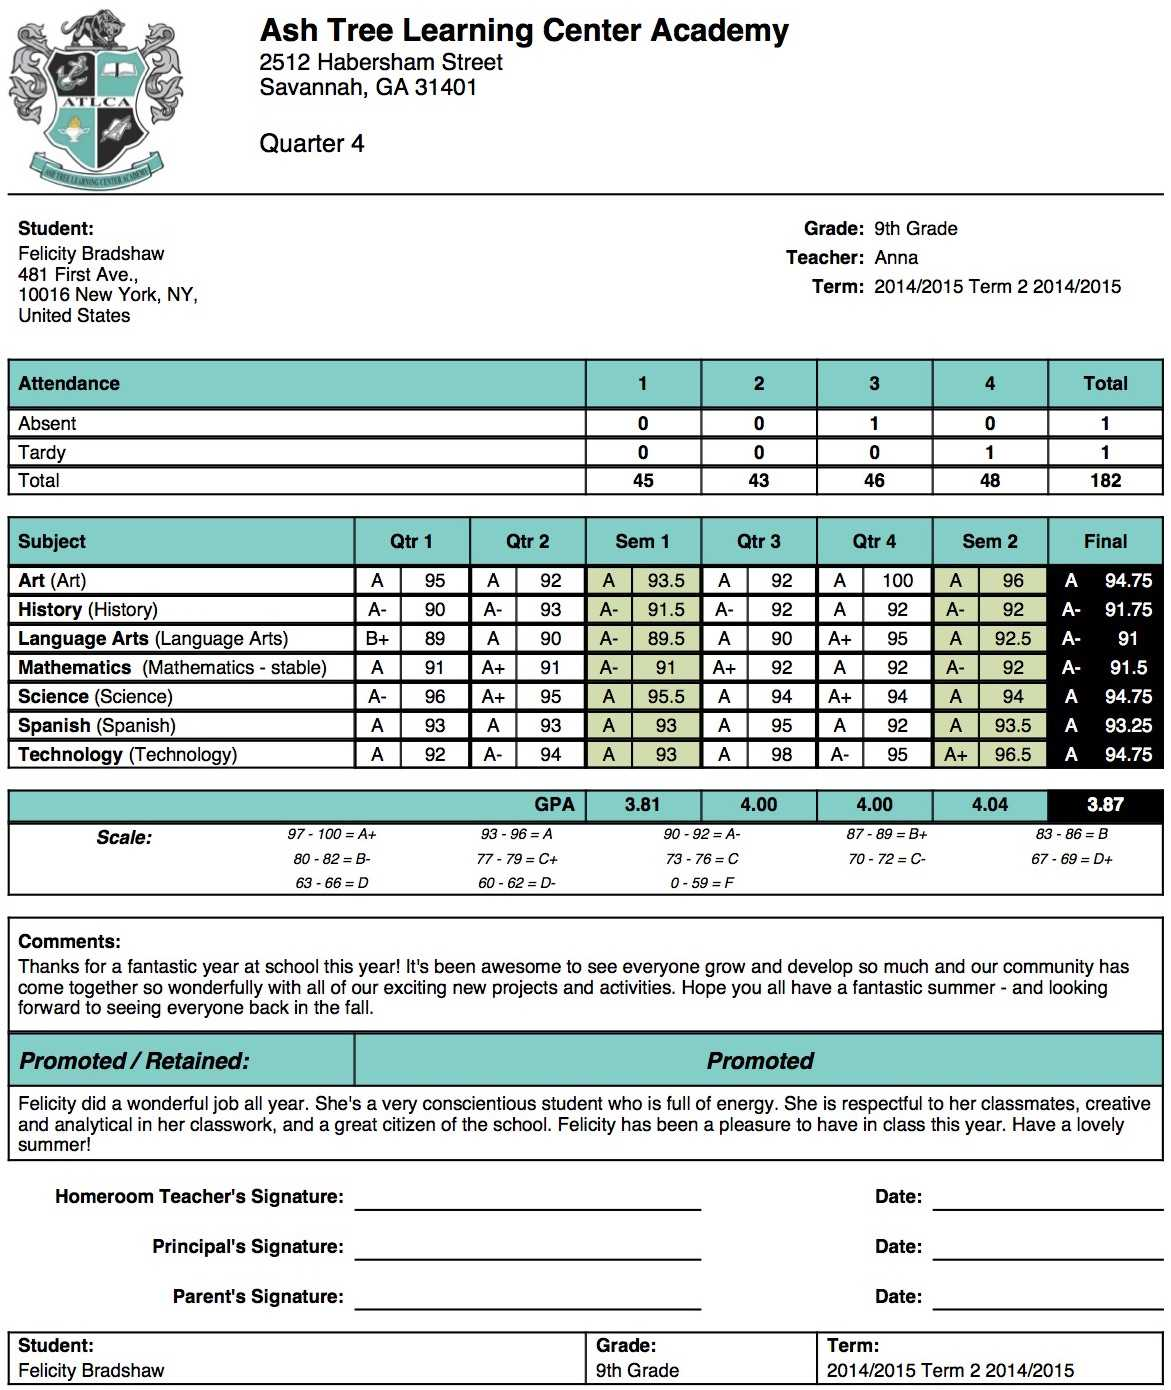 Ash Tree Learning Center Academy Report Card Template Inside Middle School Report Card Template